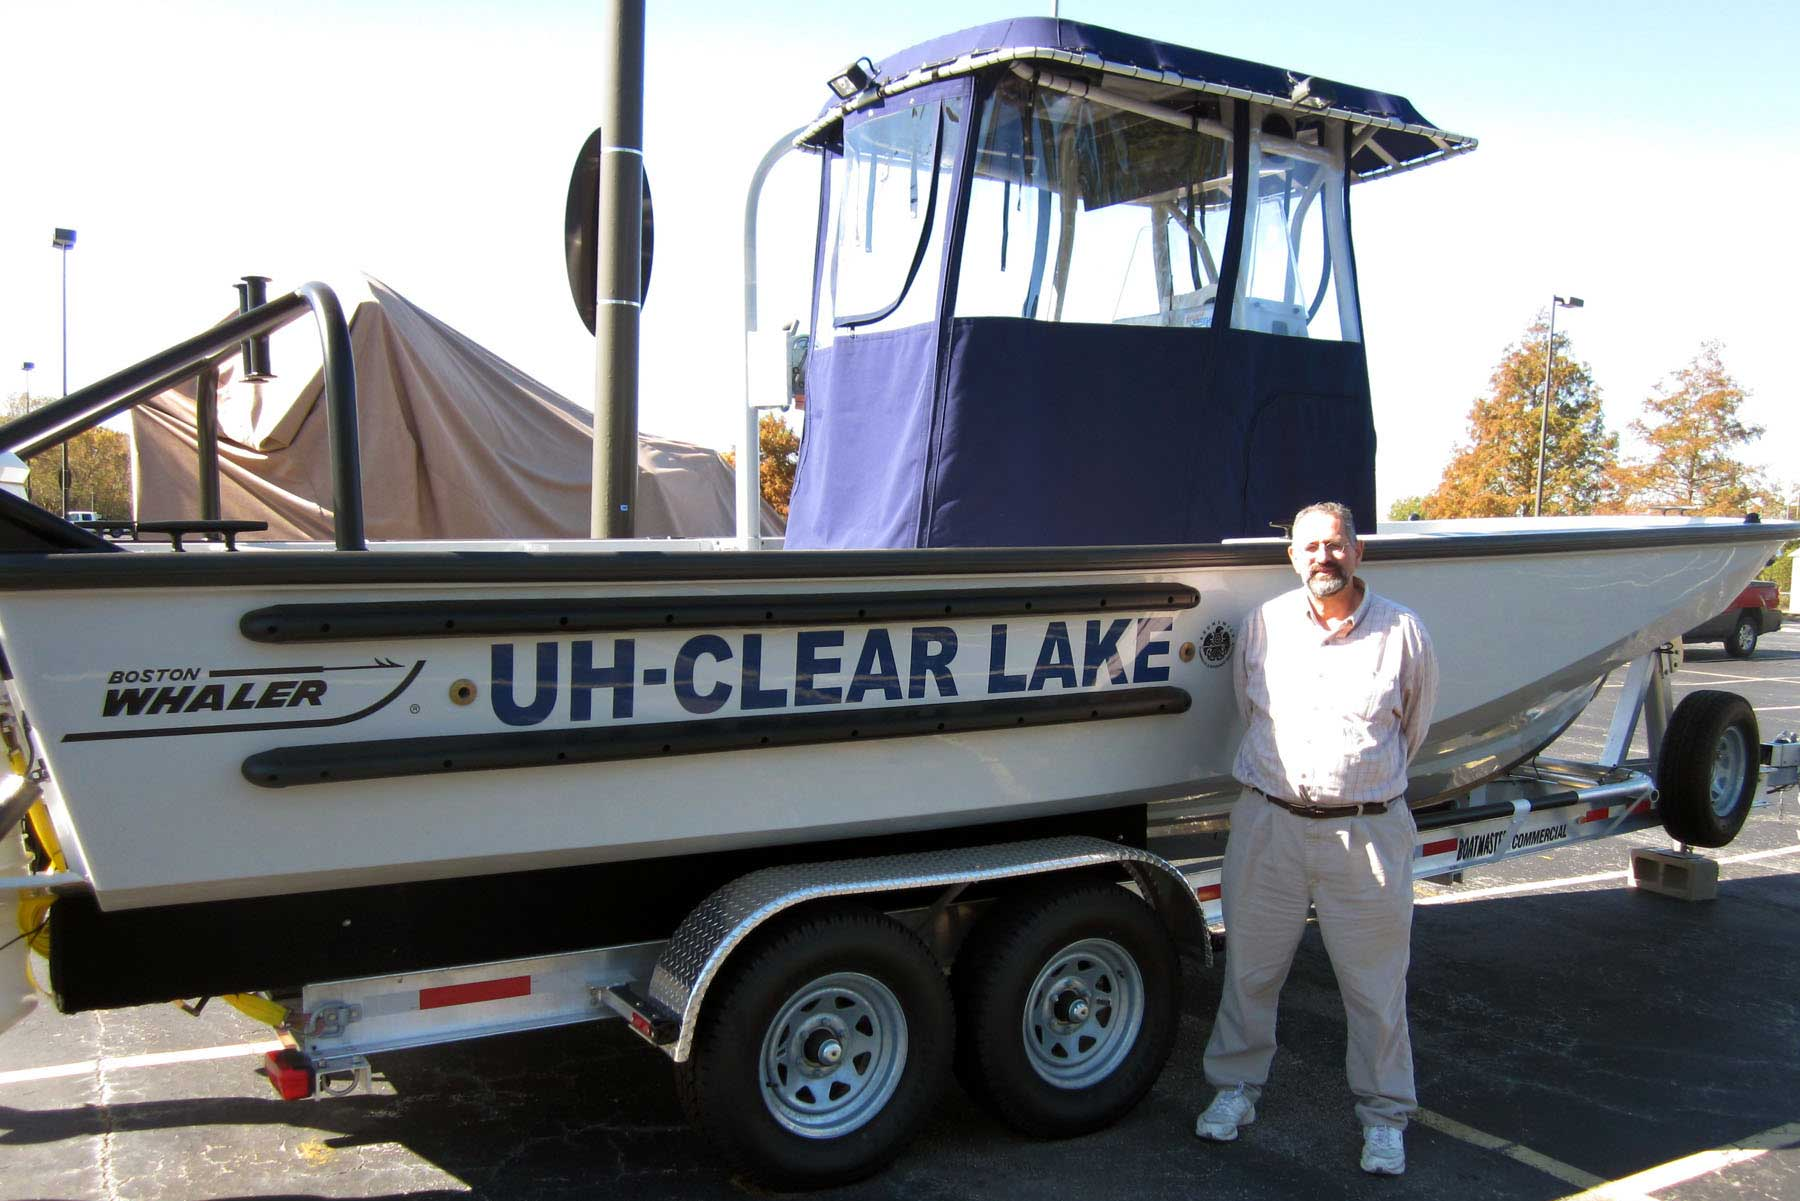 Dr. George Guillen, pictured with a 25-foot Boston Whaler